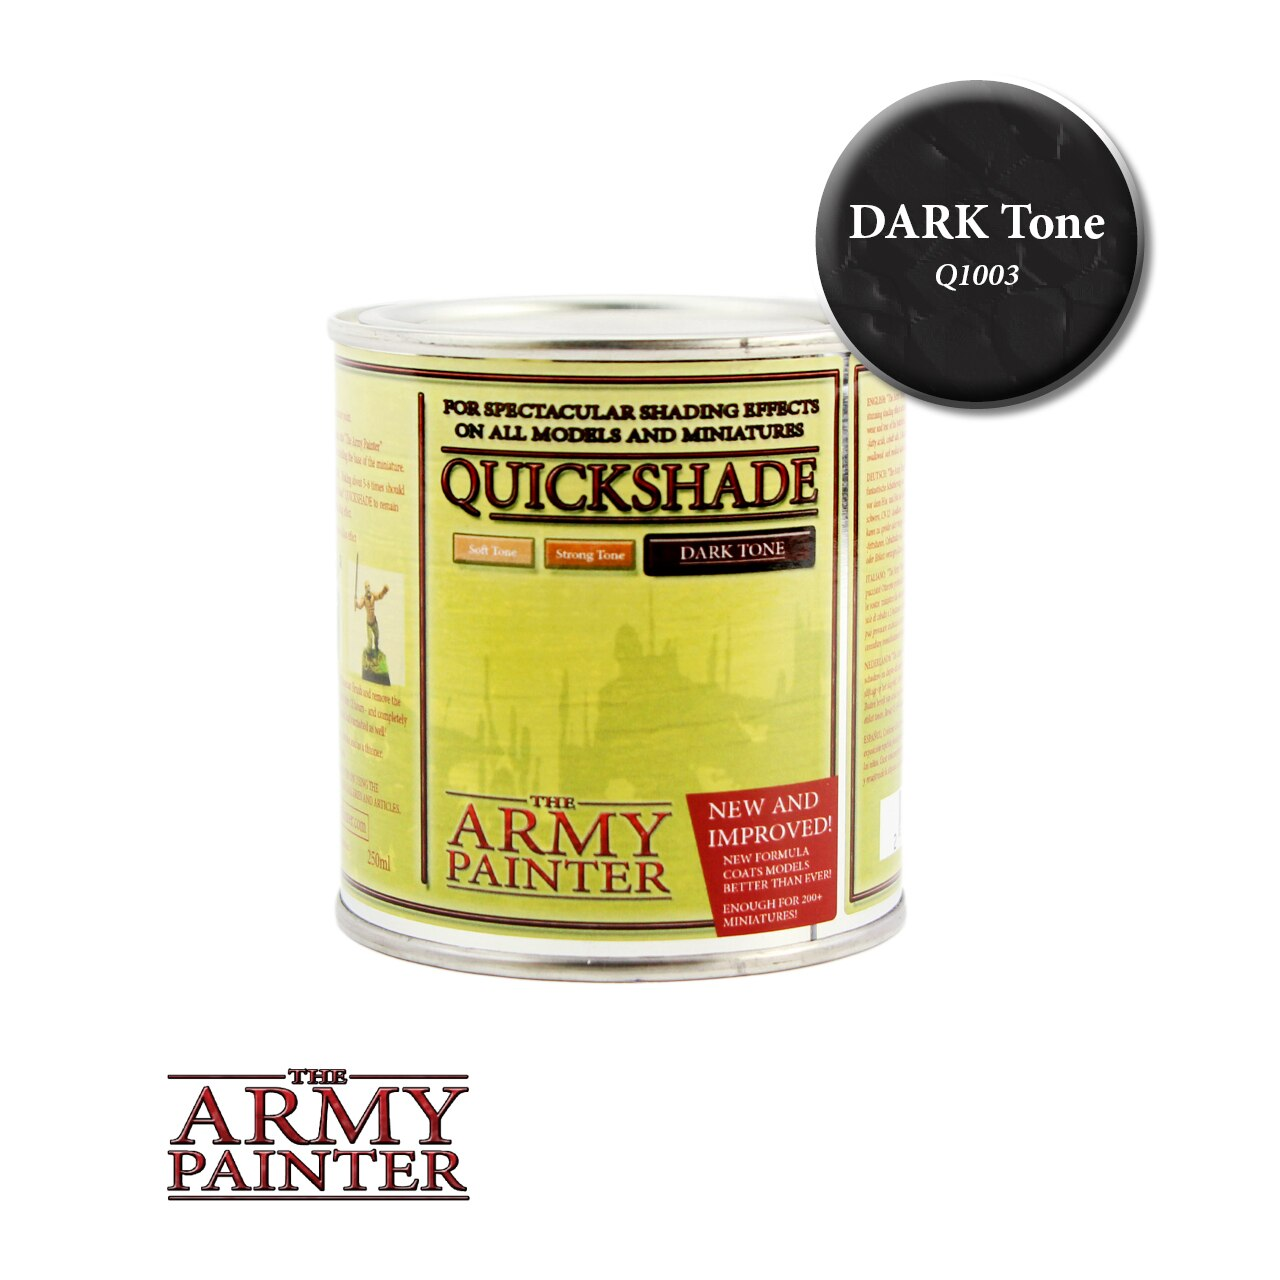 Quickshade, Dark Tone